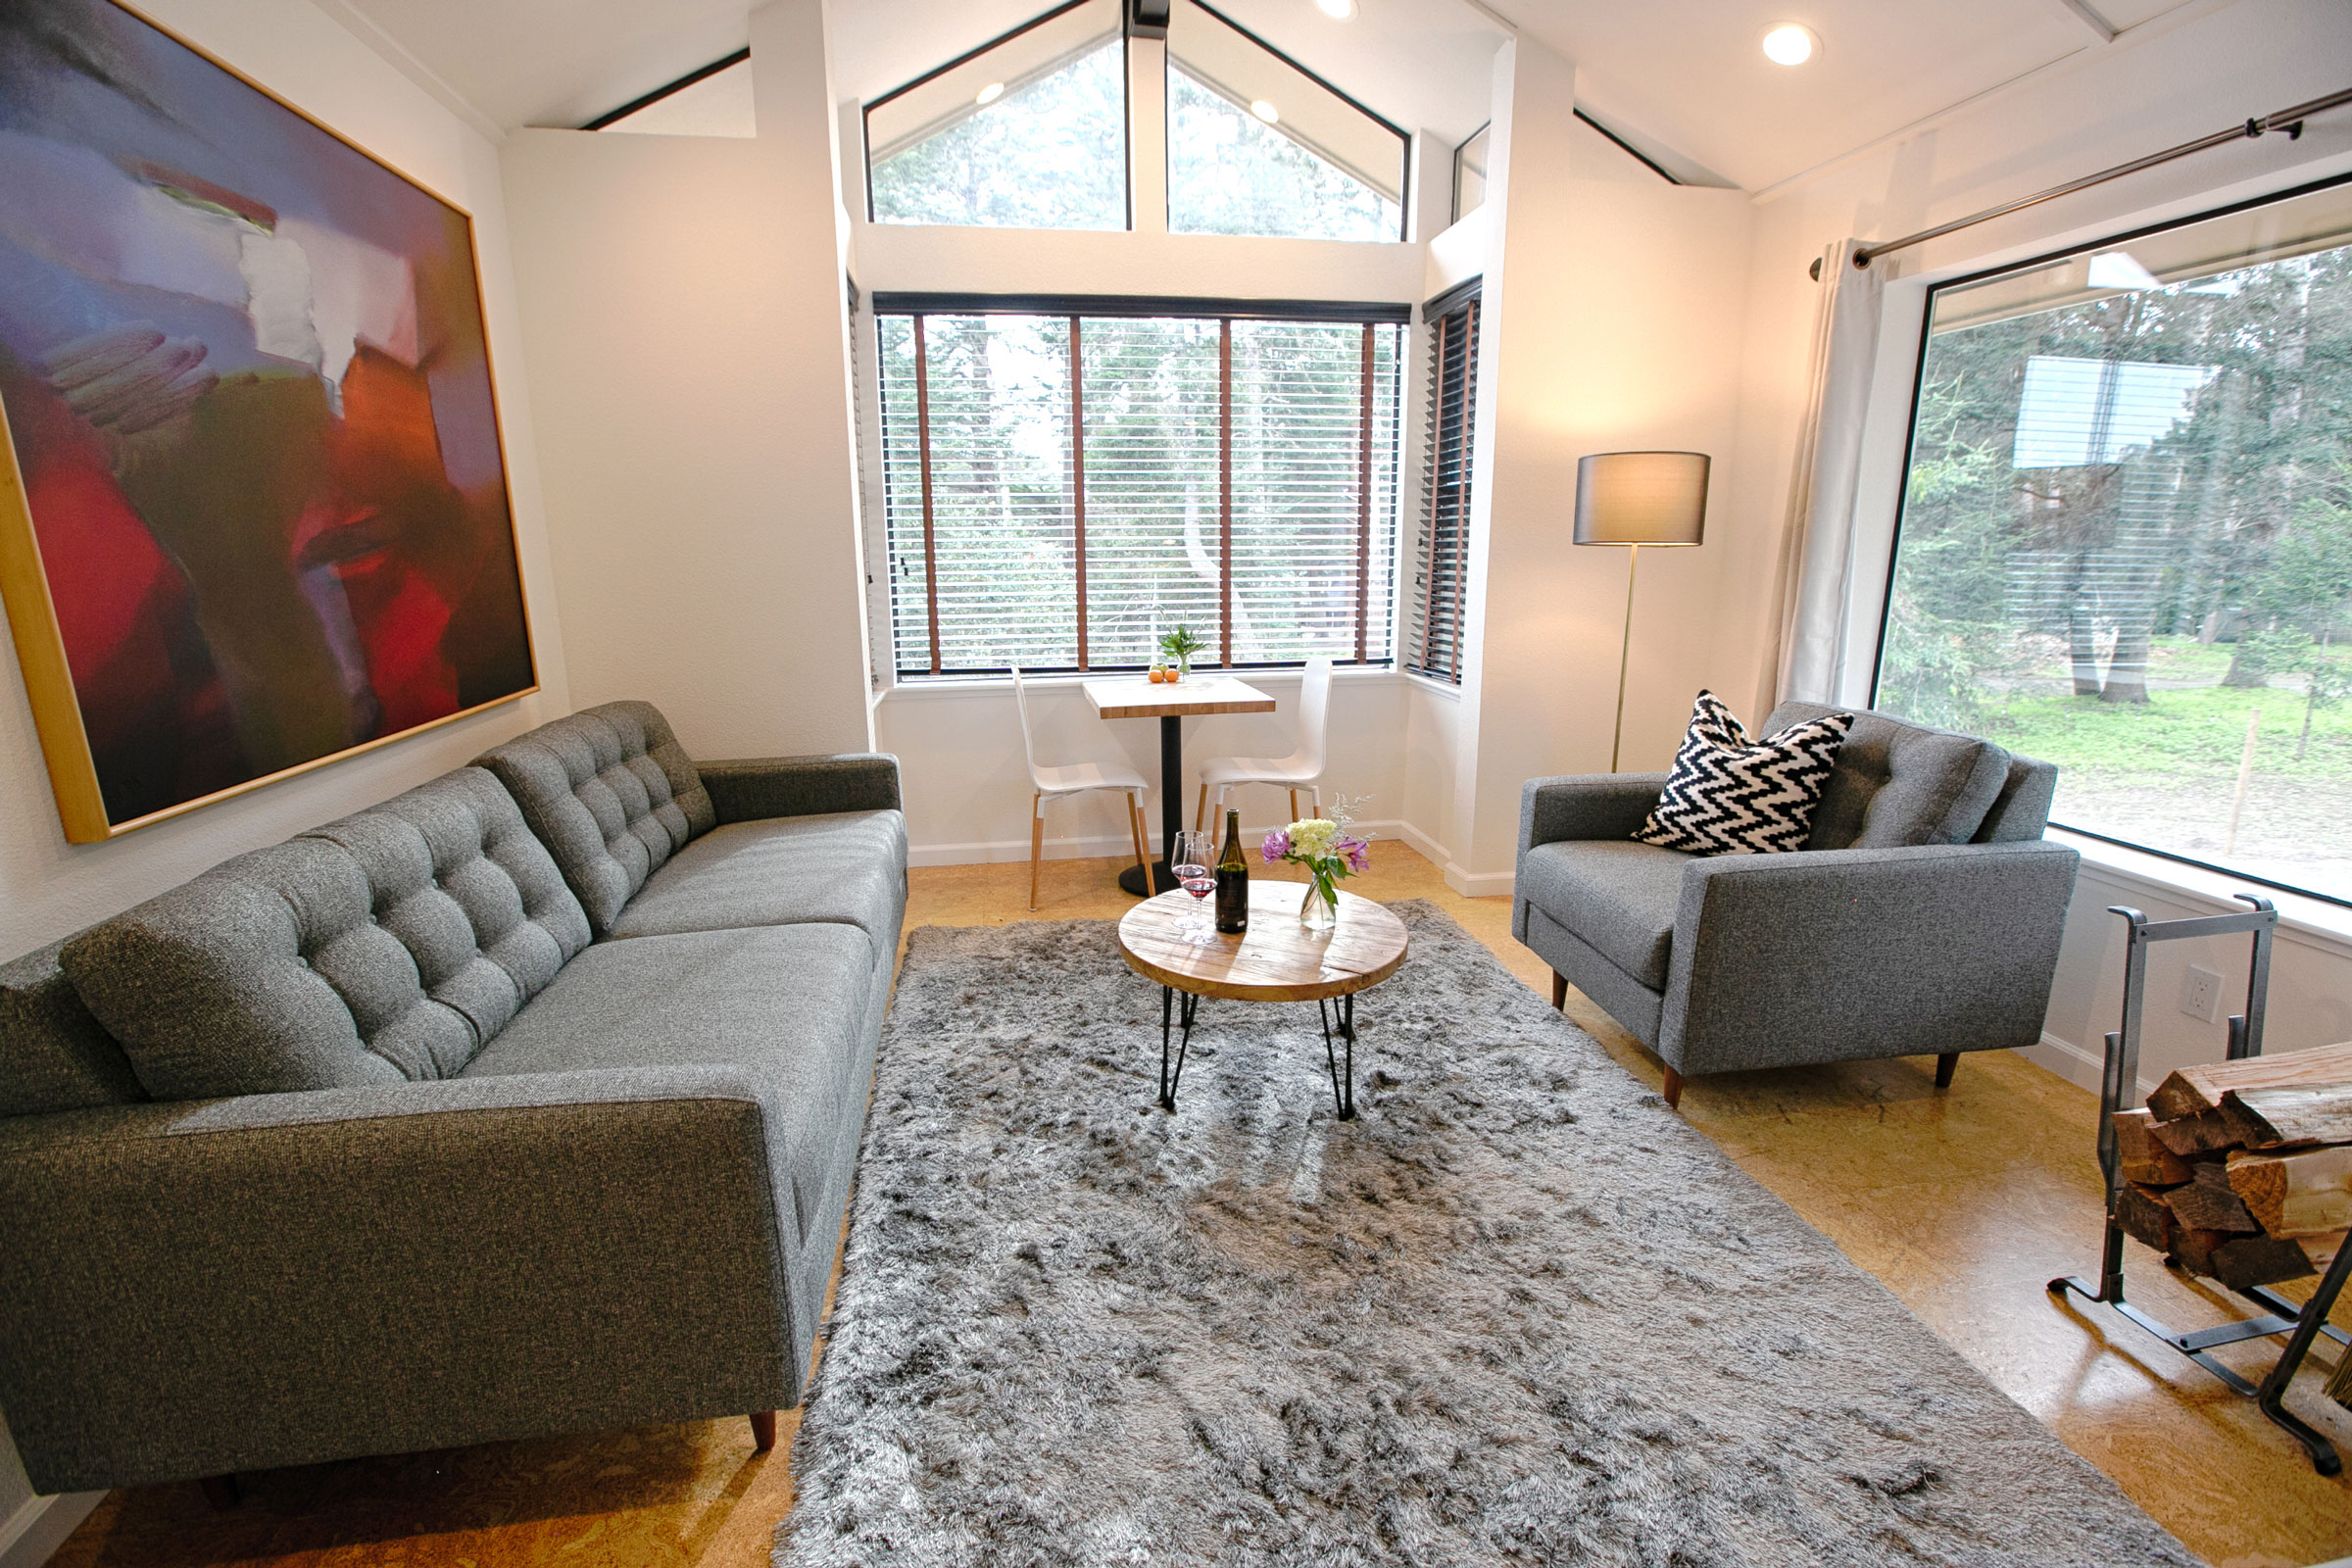 The sitting area of room 202 in the Lodge at Glendeven of Mendocino with plush grey rug, nook with table and chairs, and contemporary art.